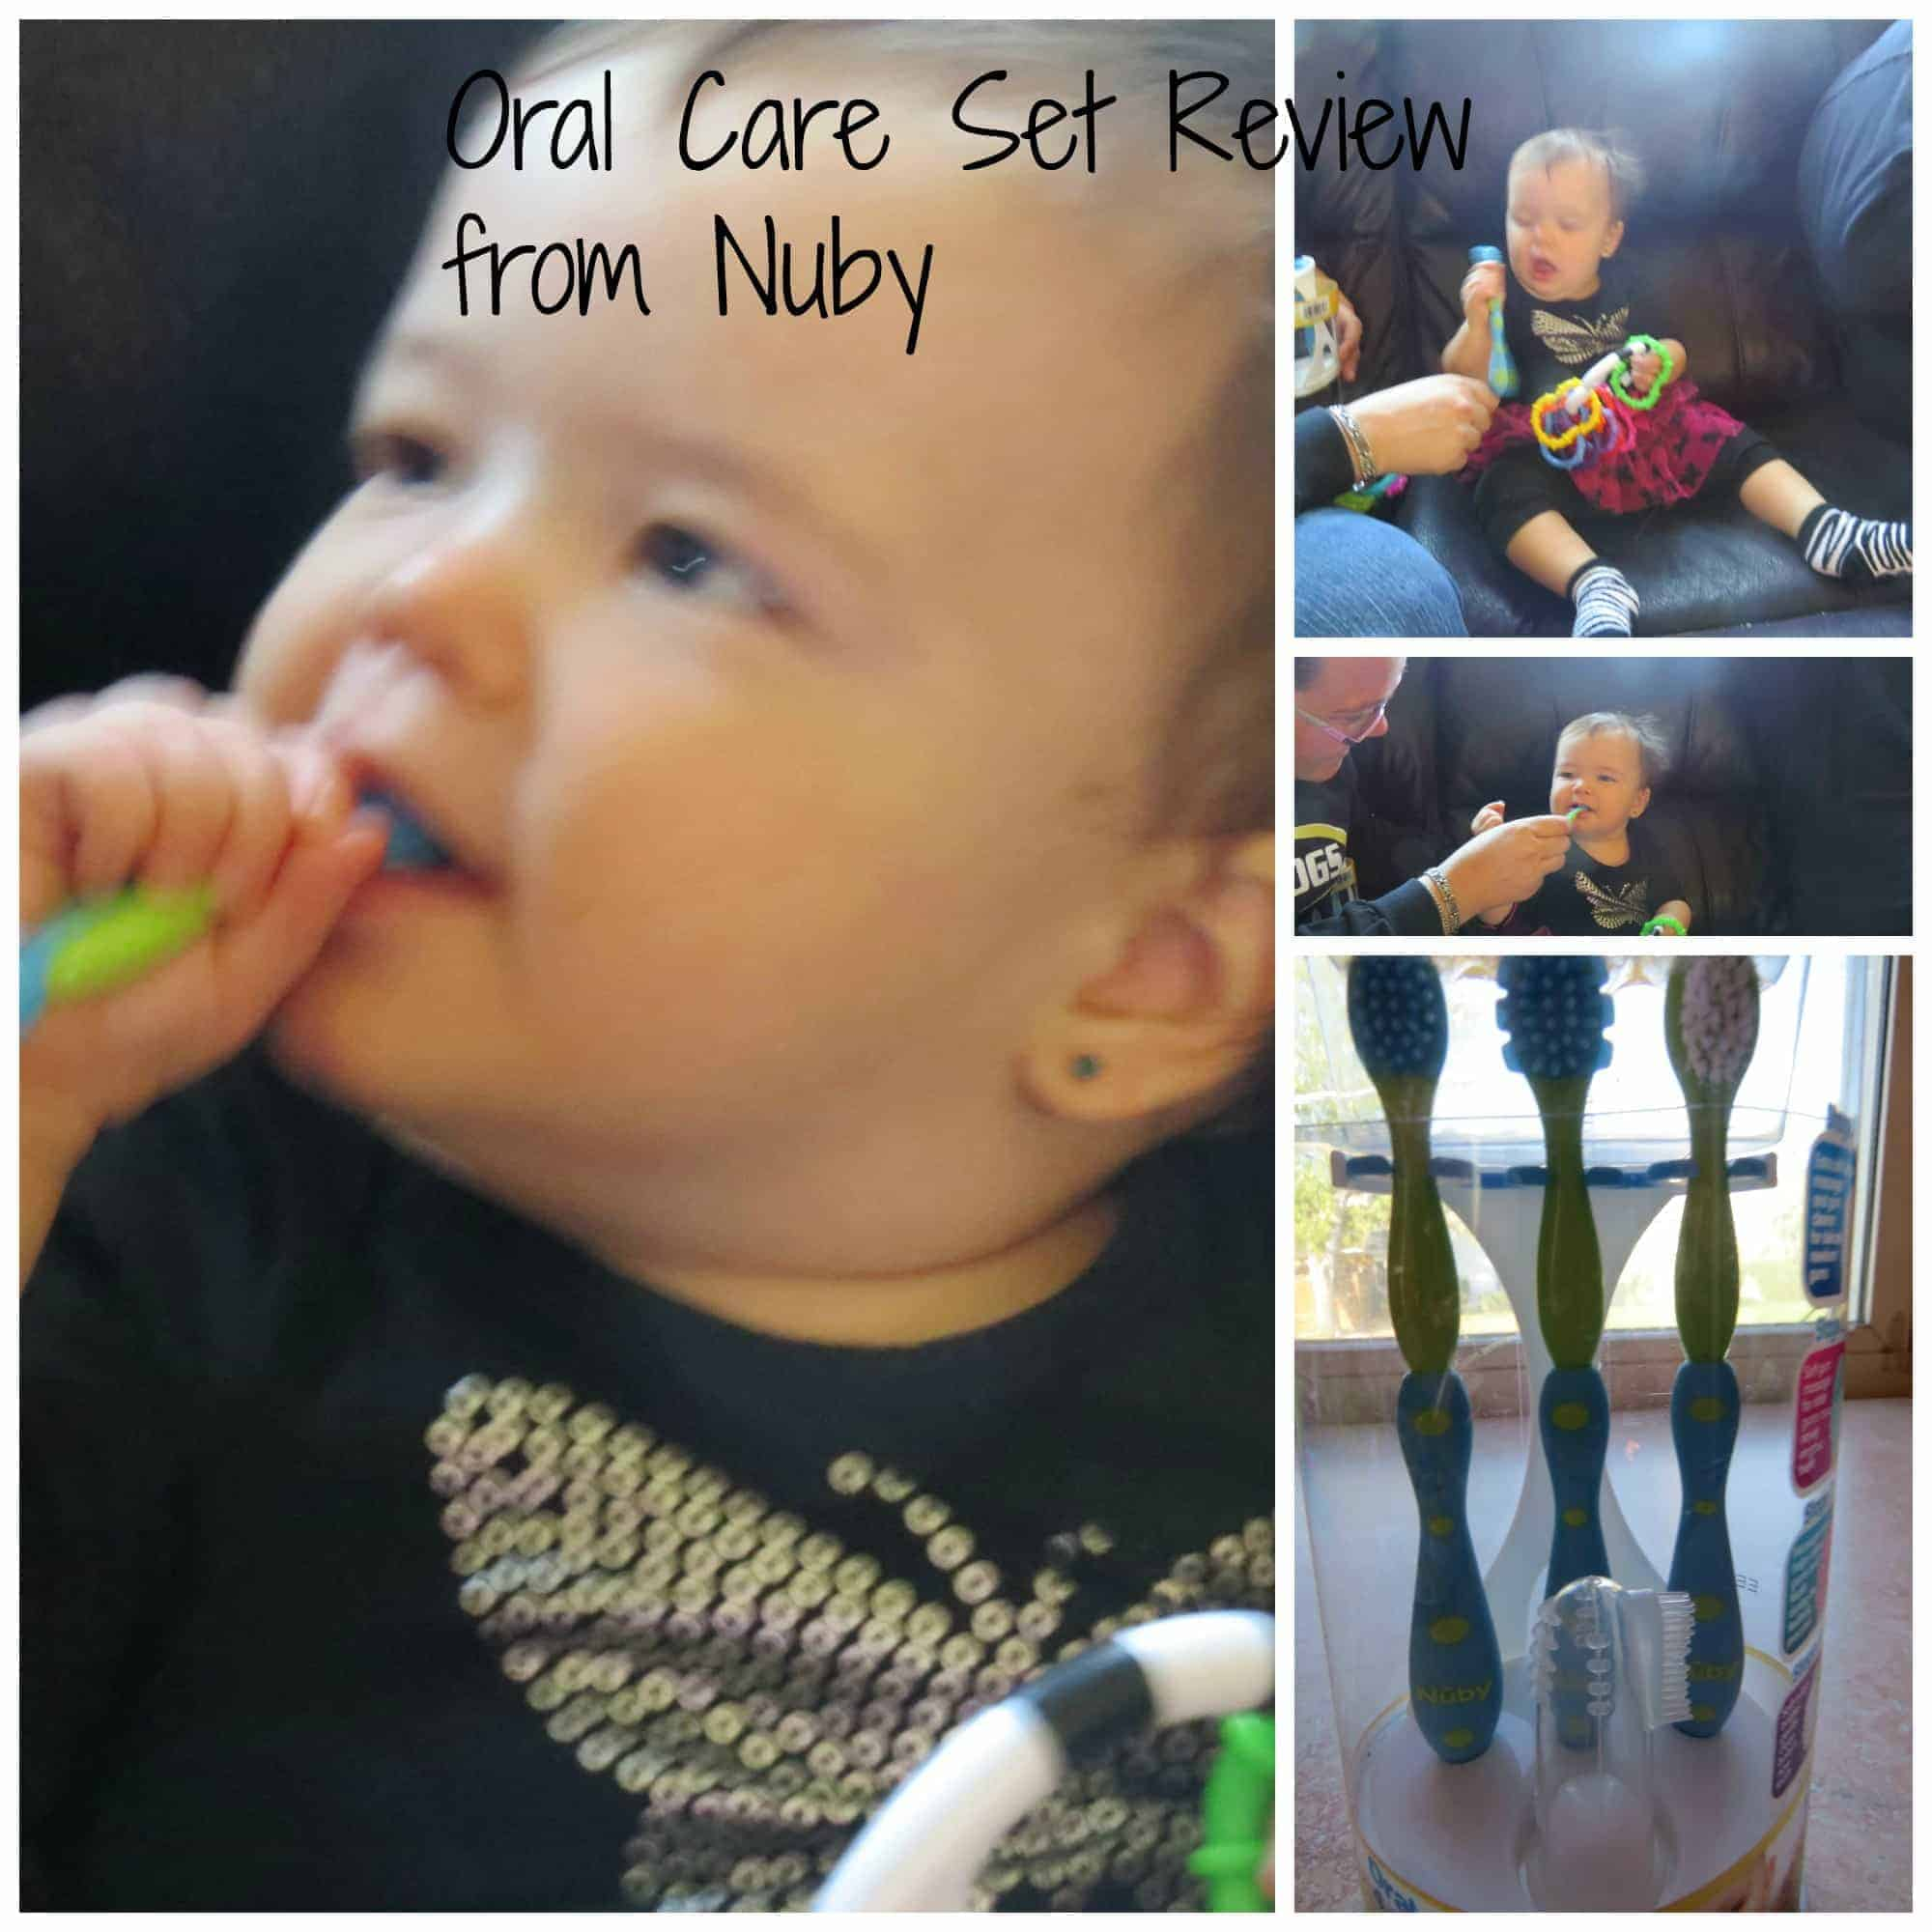 Oral Care Set Review from Nuby